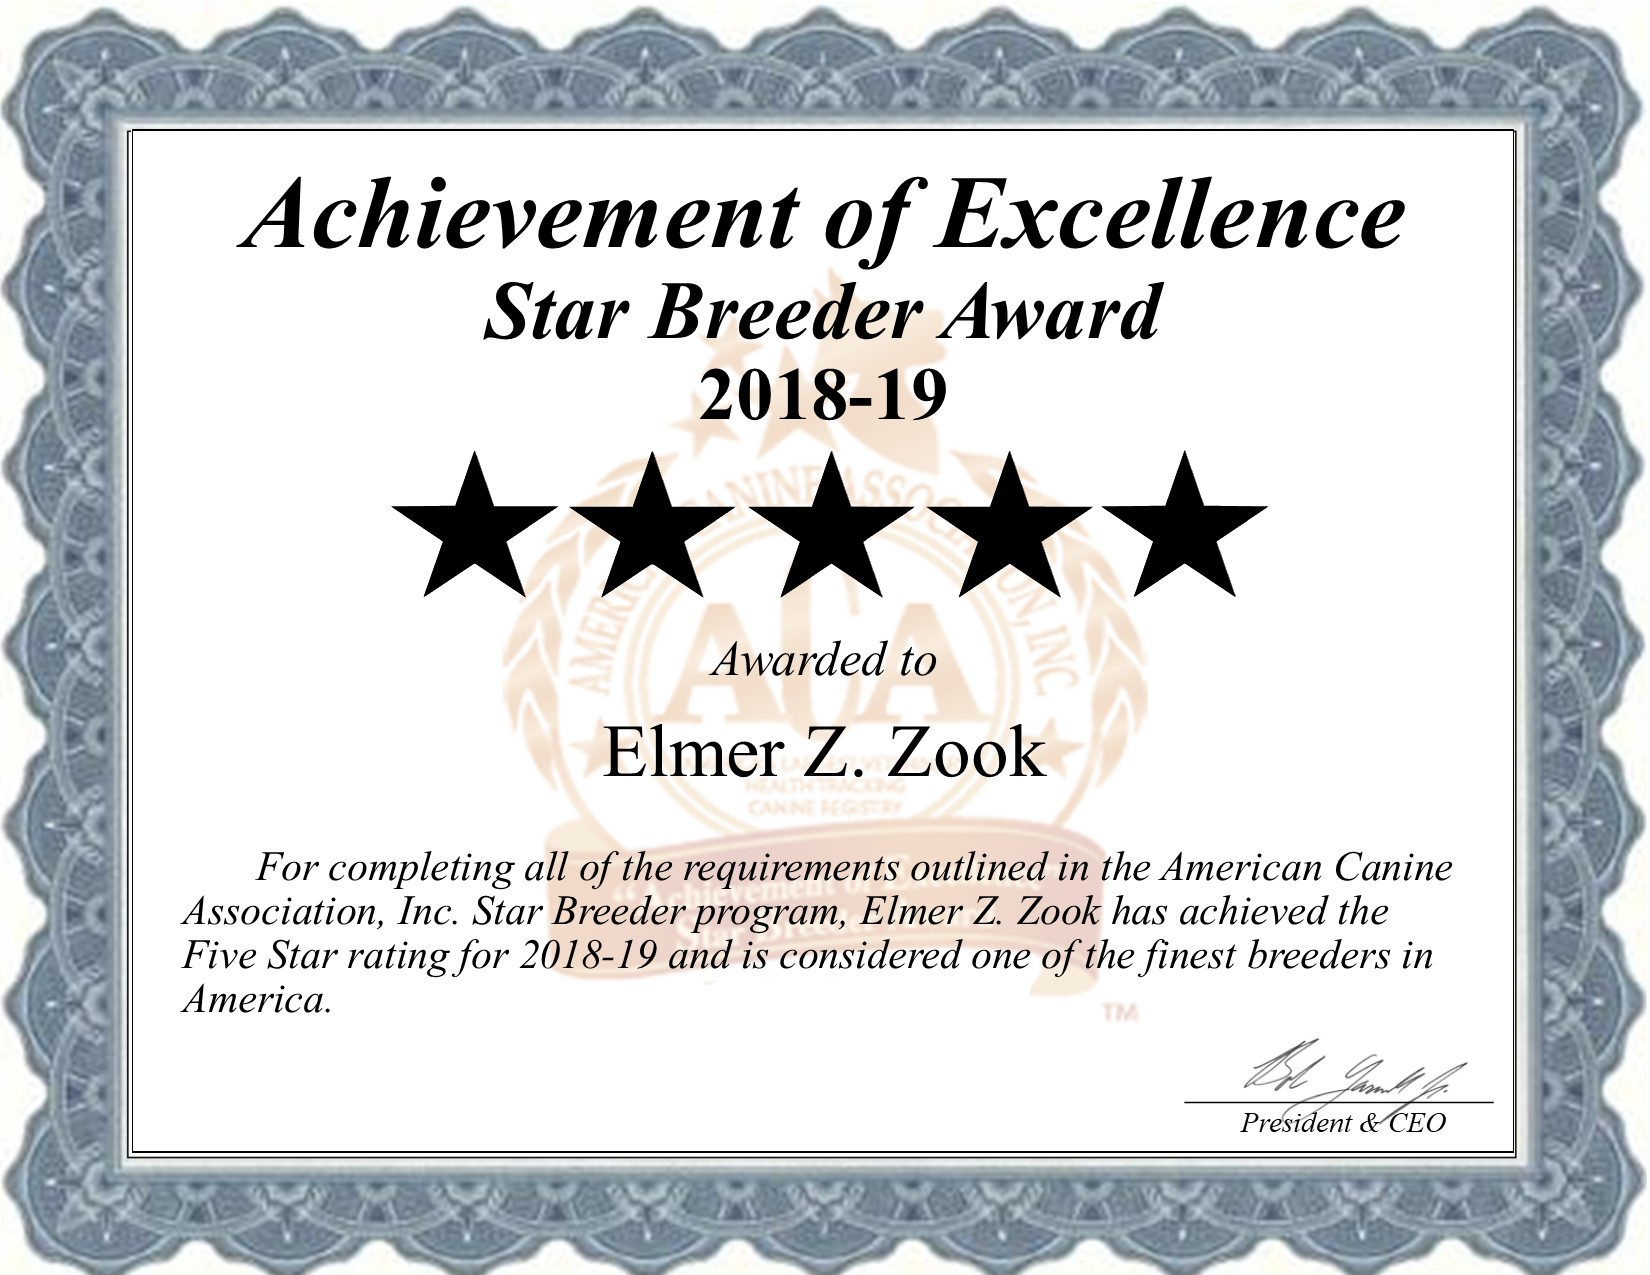 elmer, zook, z, dog. breeder, star, certificate, ephrata, pa, pennsylvania, elmer-zook, dog-breeder, puppy, dog, kennels, mill, puppymill, usda, 5-star, elmer-z-zook